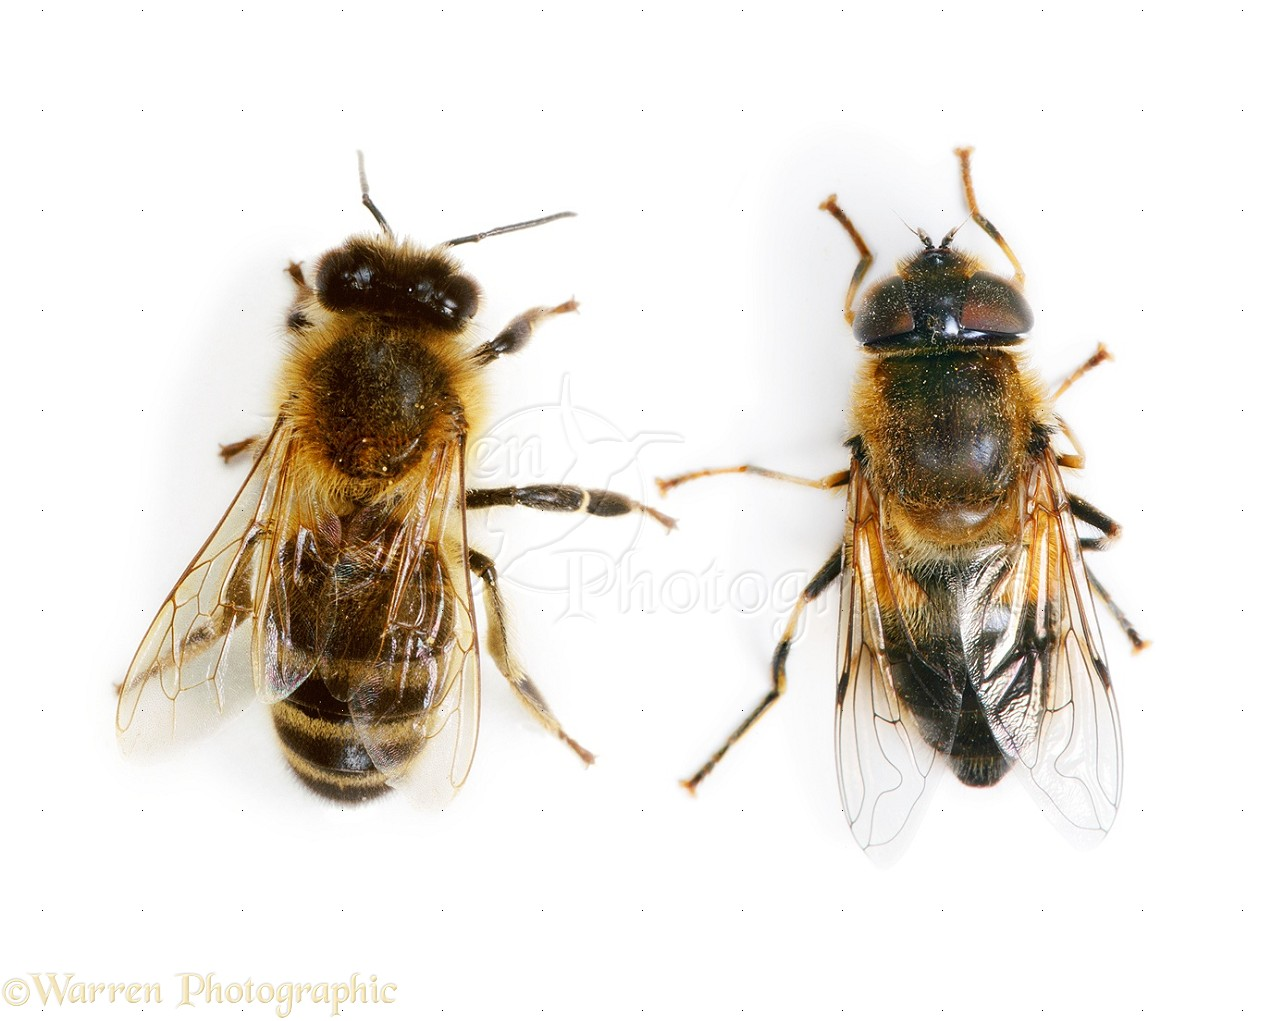 drone new with 38654 Honey Bee And Hover Fly Side By Side on 7358329920 together with 7014613909 also Croatian Stereographic Projections additionally Cinefly drone uav aerial geelong waterfront likewise Drones Multirotors c 116.